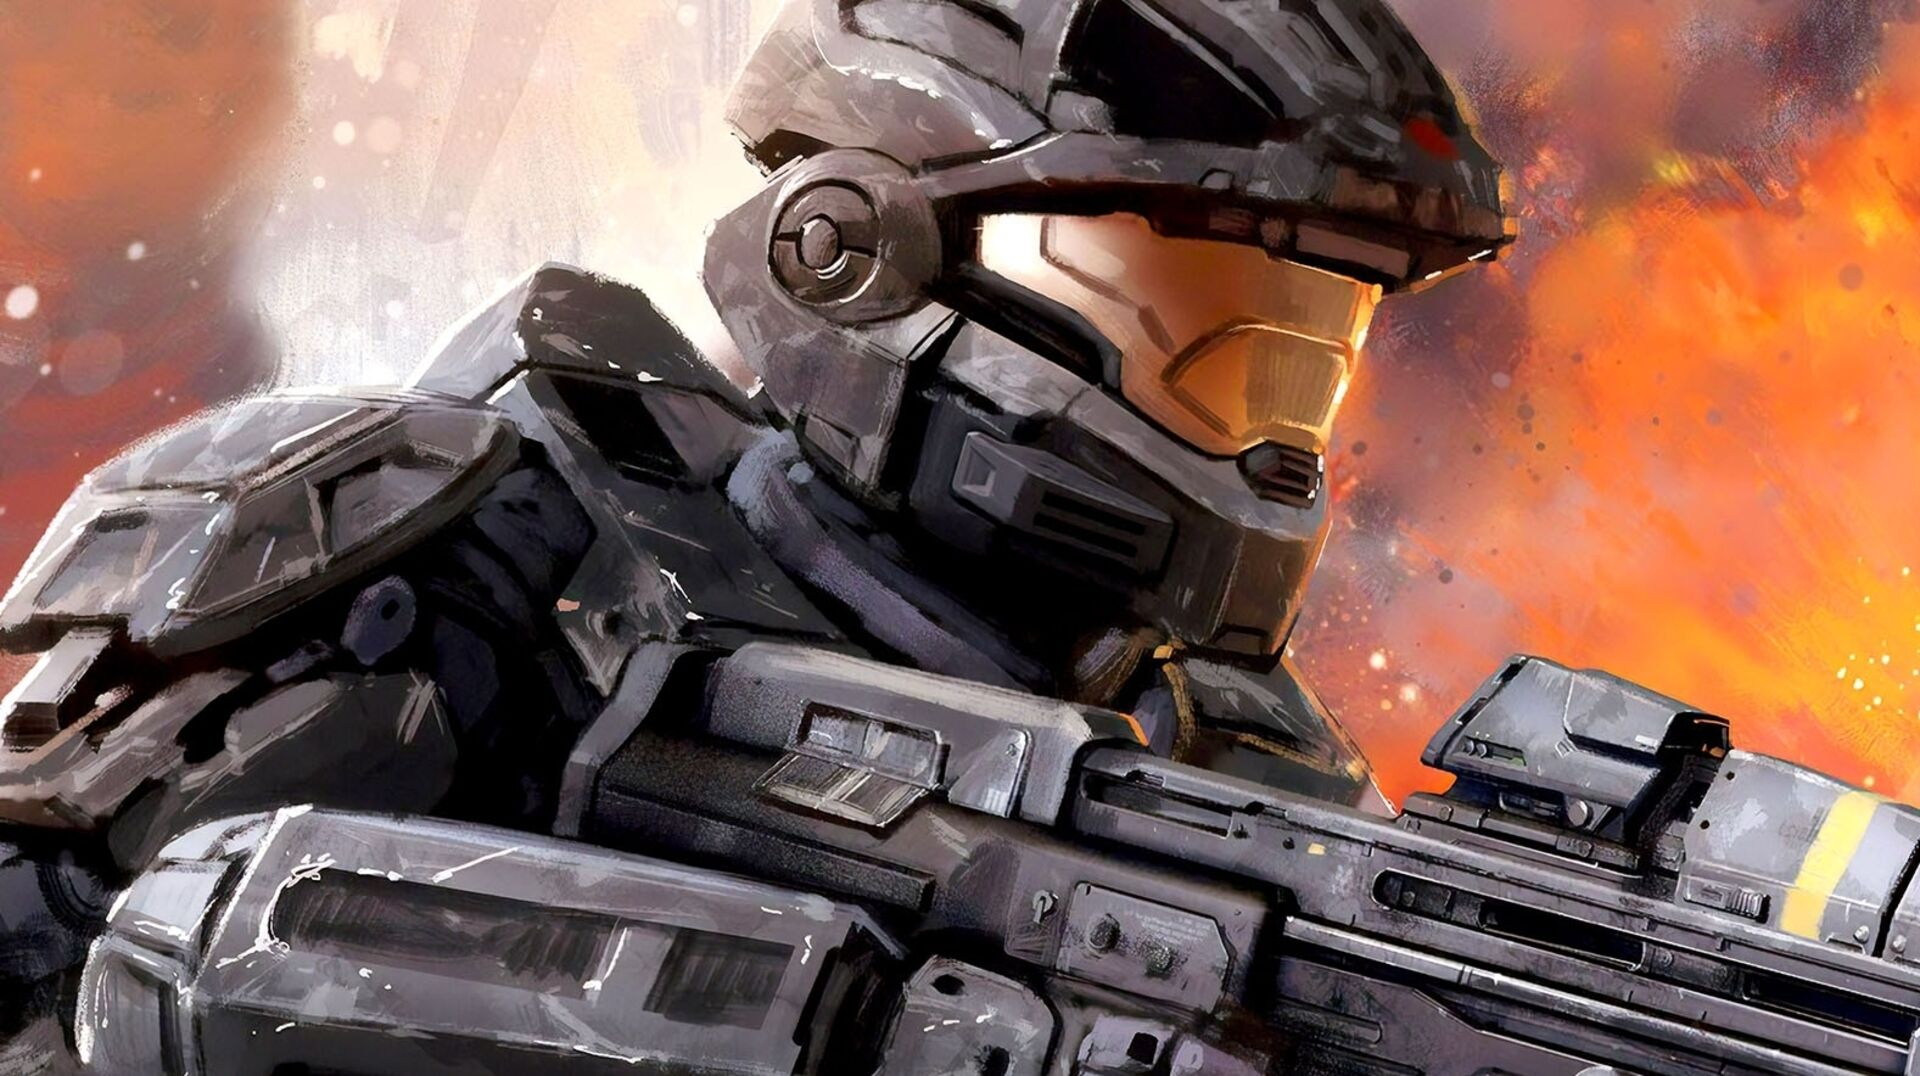 Halo Reach S Remaster Is Ok But Key Improvements Are Required Eurogamer Net